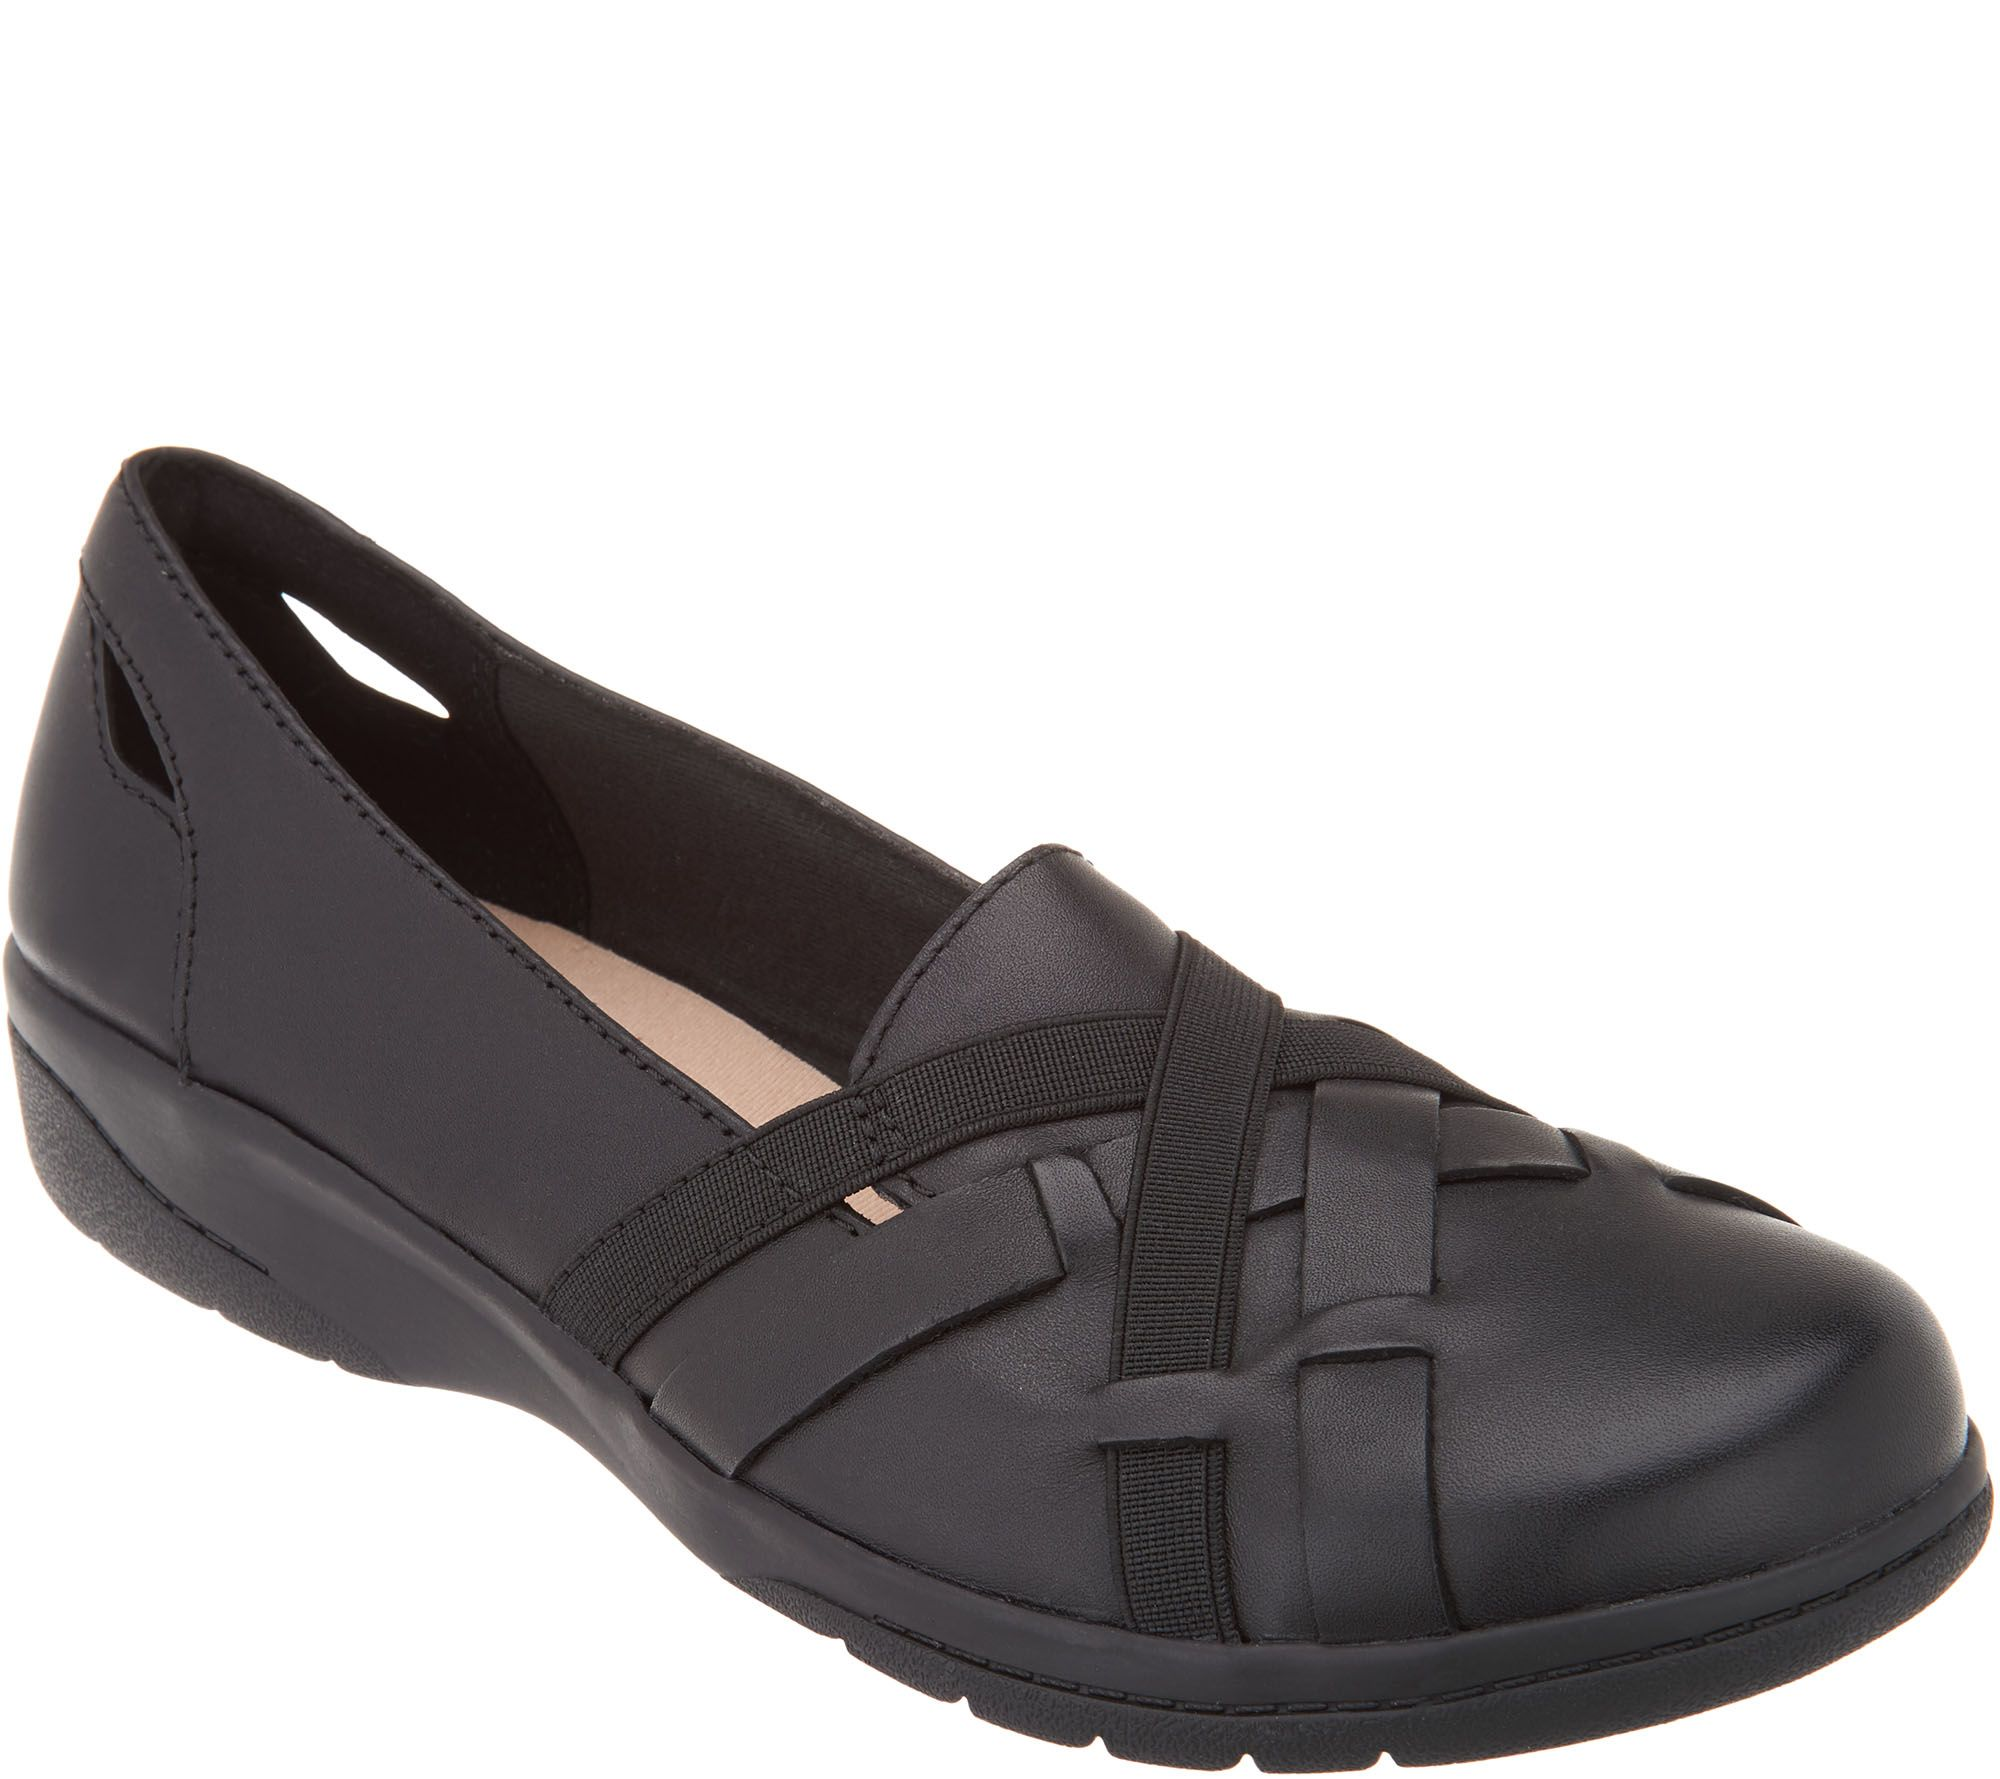 800c27a8 Clarks Collection Leather Slip-On Shoes - Cheyn Creek — QVC.com